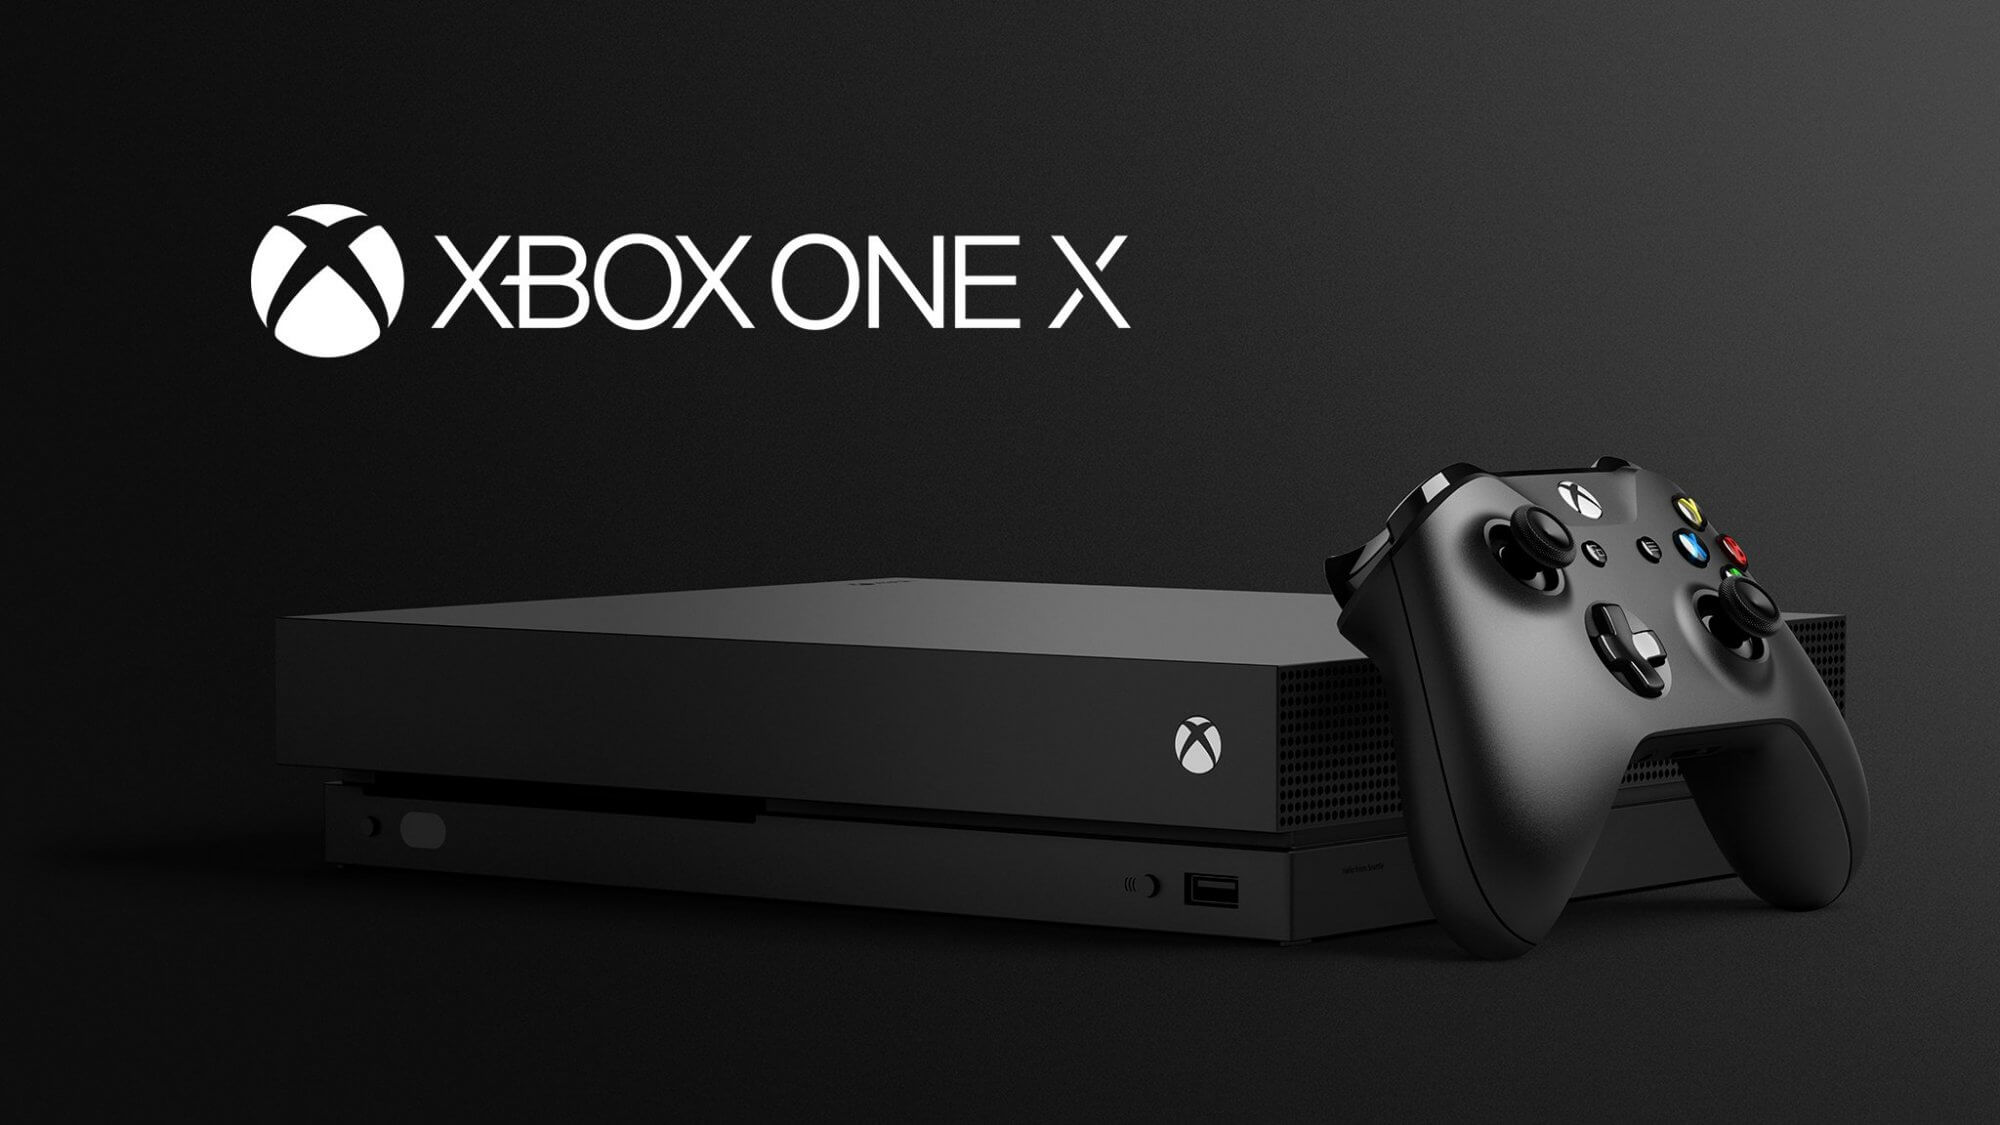 Microsoft unveils the $499 Xbox One X